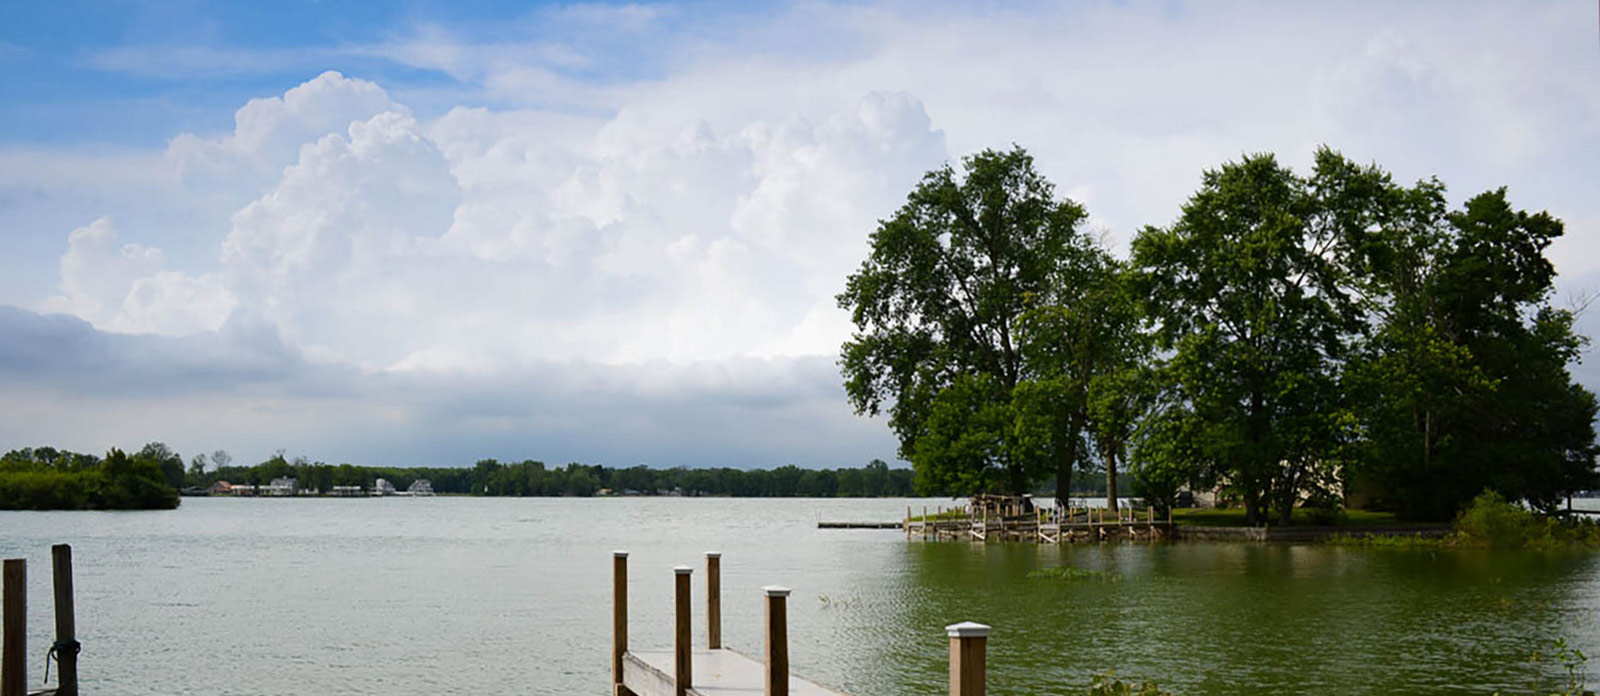 Buckeye Lake Communities - lakefront homes